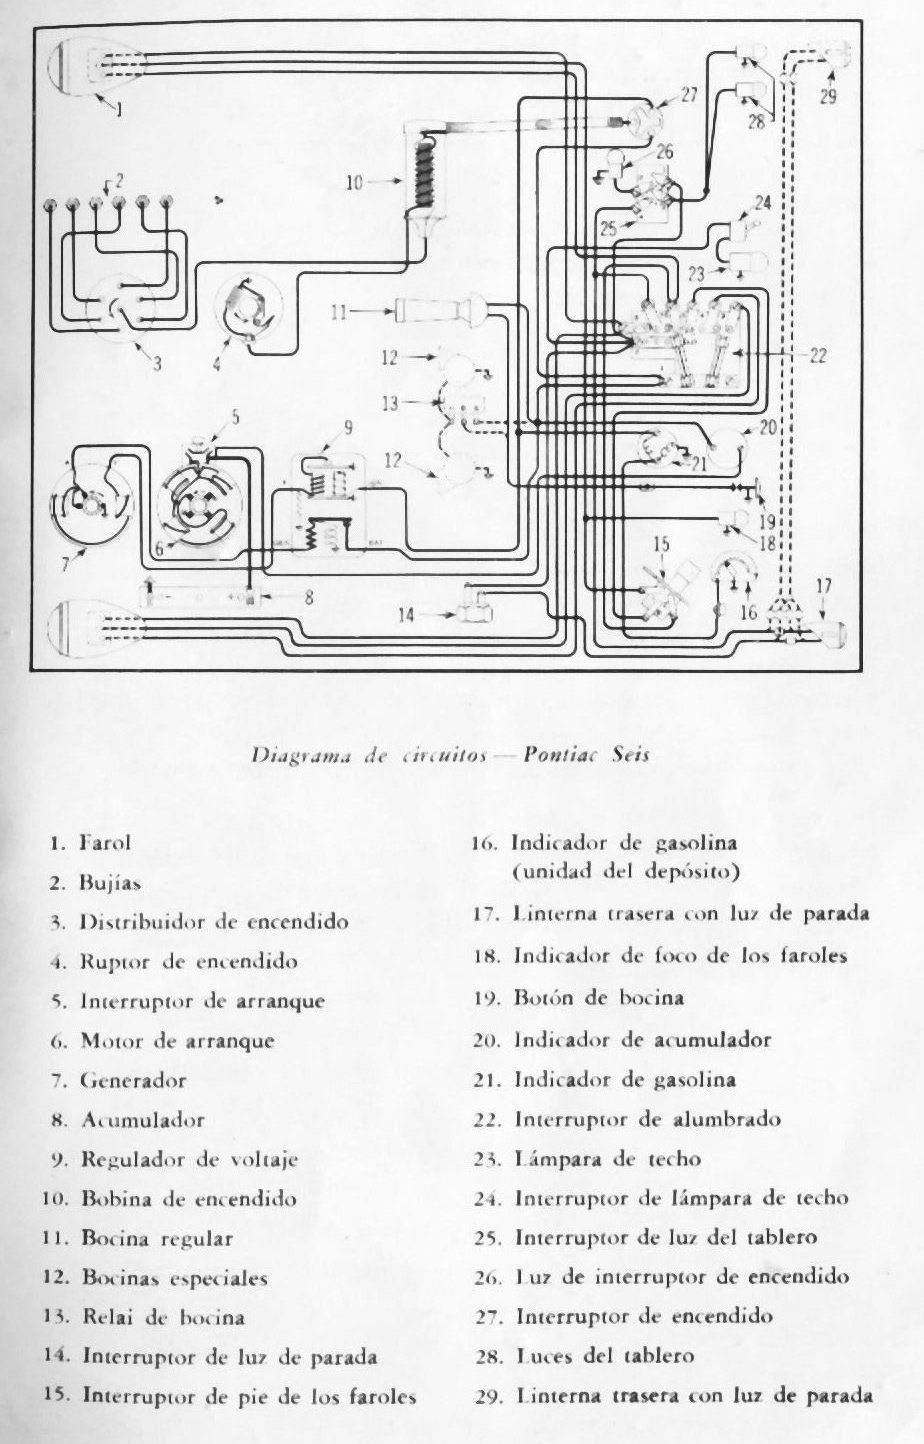 Pontiac Car Manuals Wiring Diagrams Pdf Fault Codes 1960 Gto Drawings Download